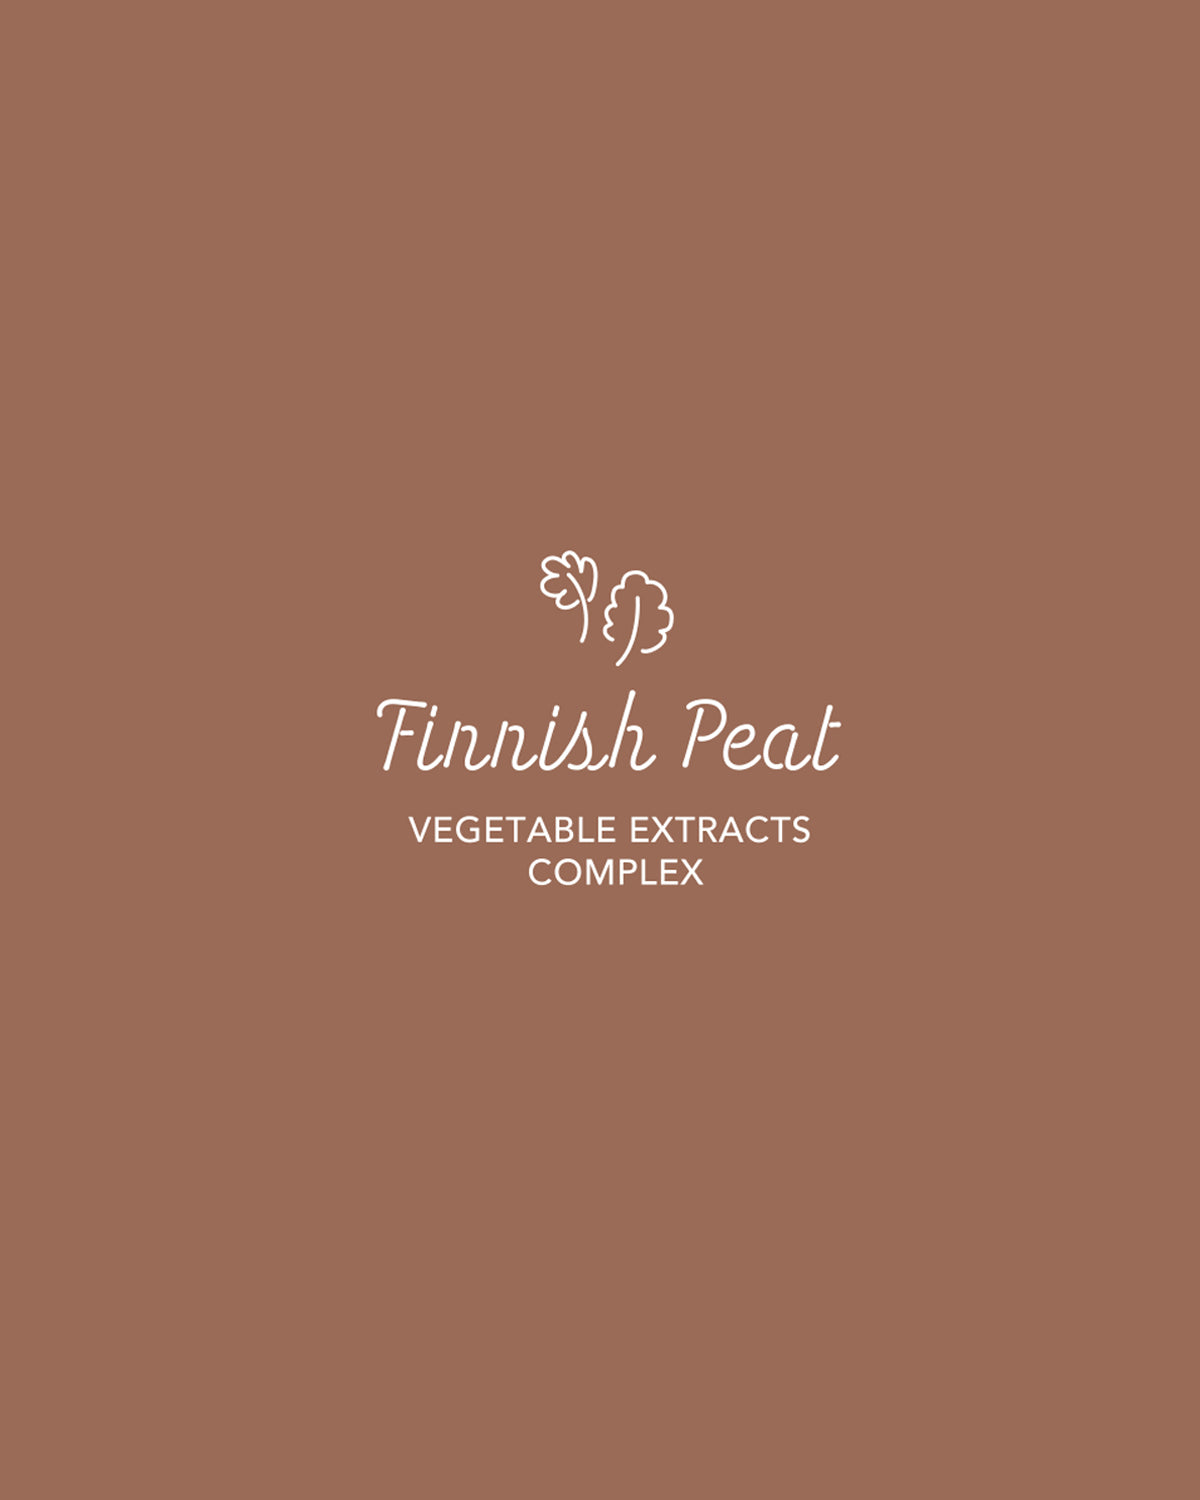 Finnish Peat Deep Clean Wash-Off Peat Mask